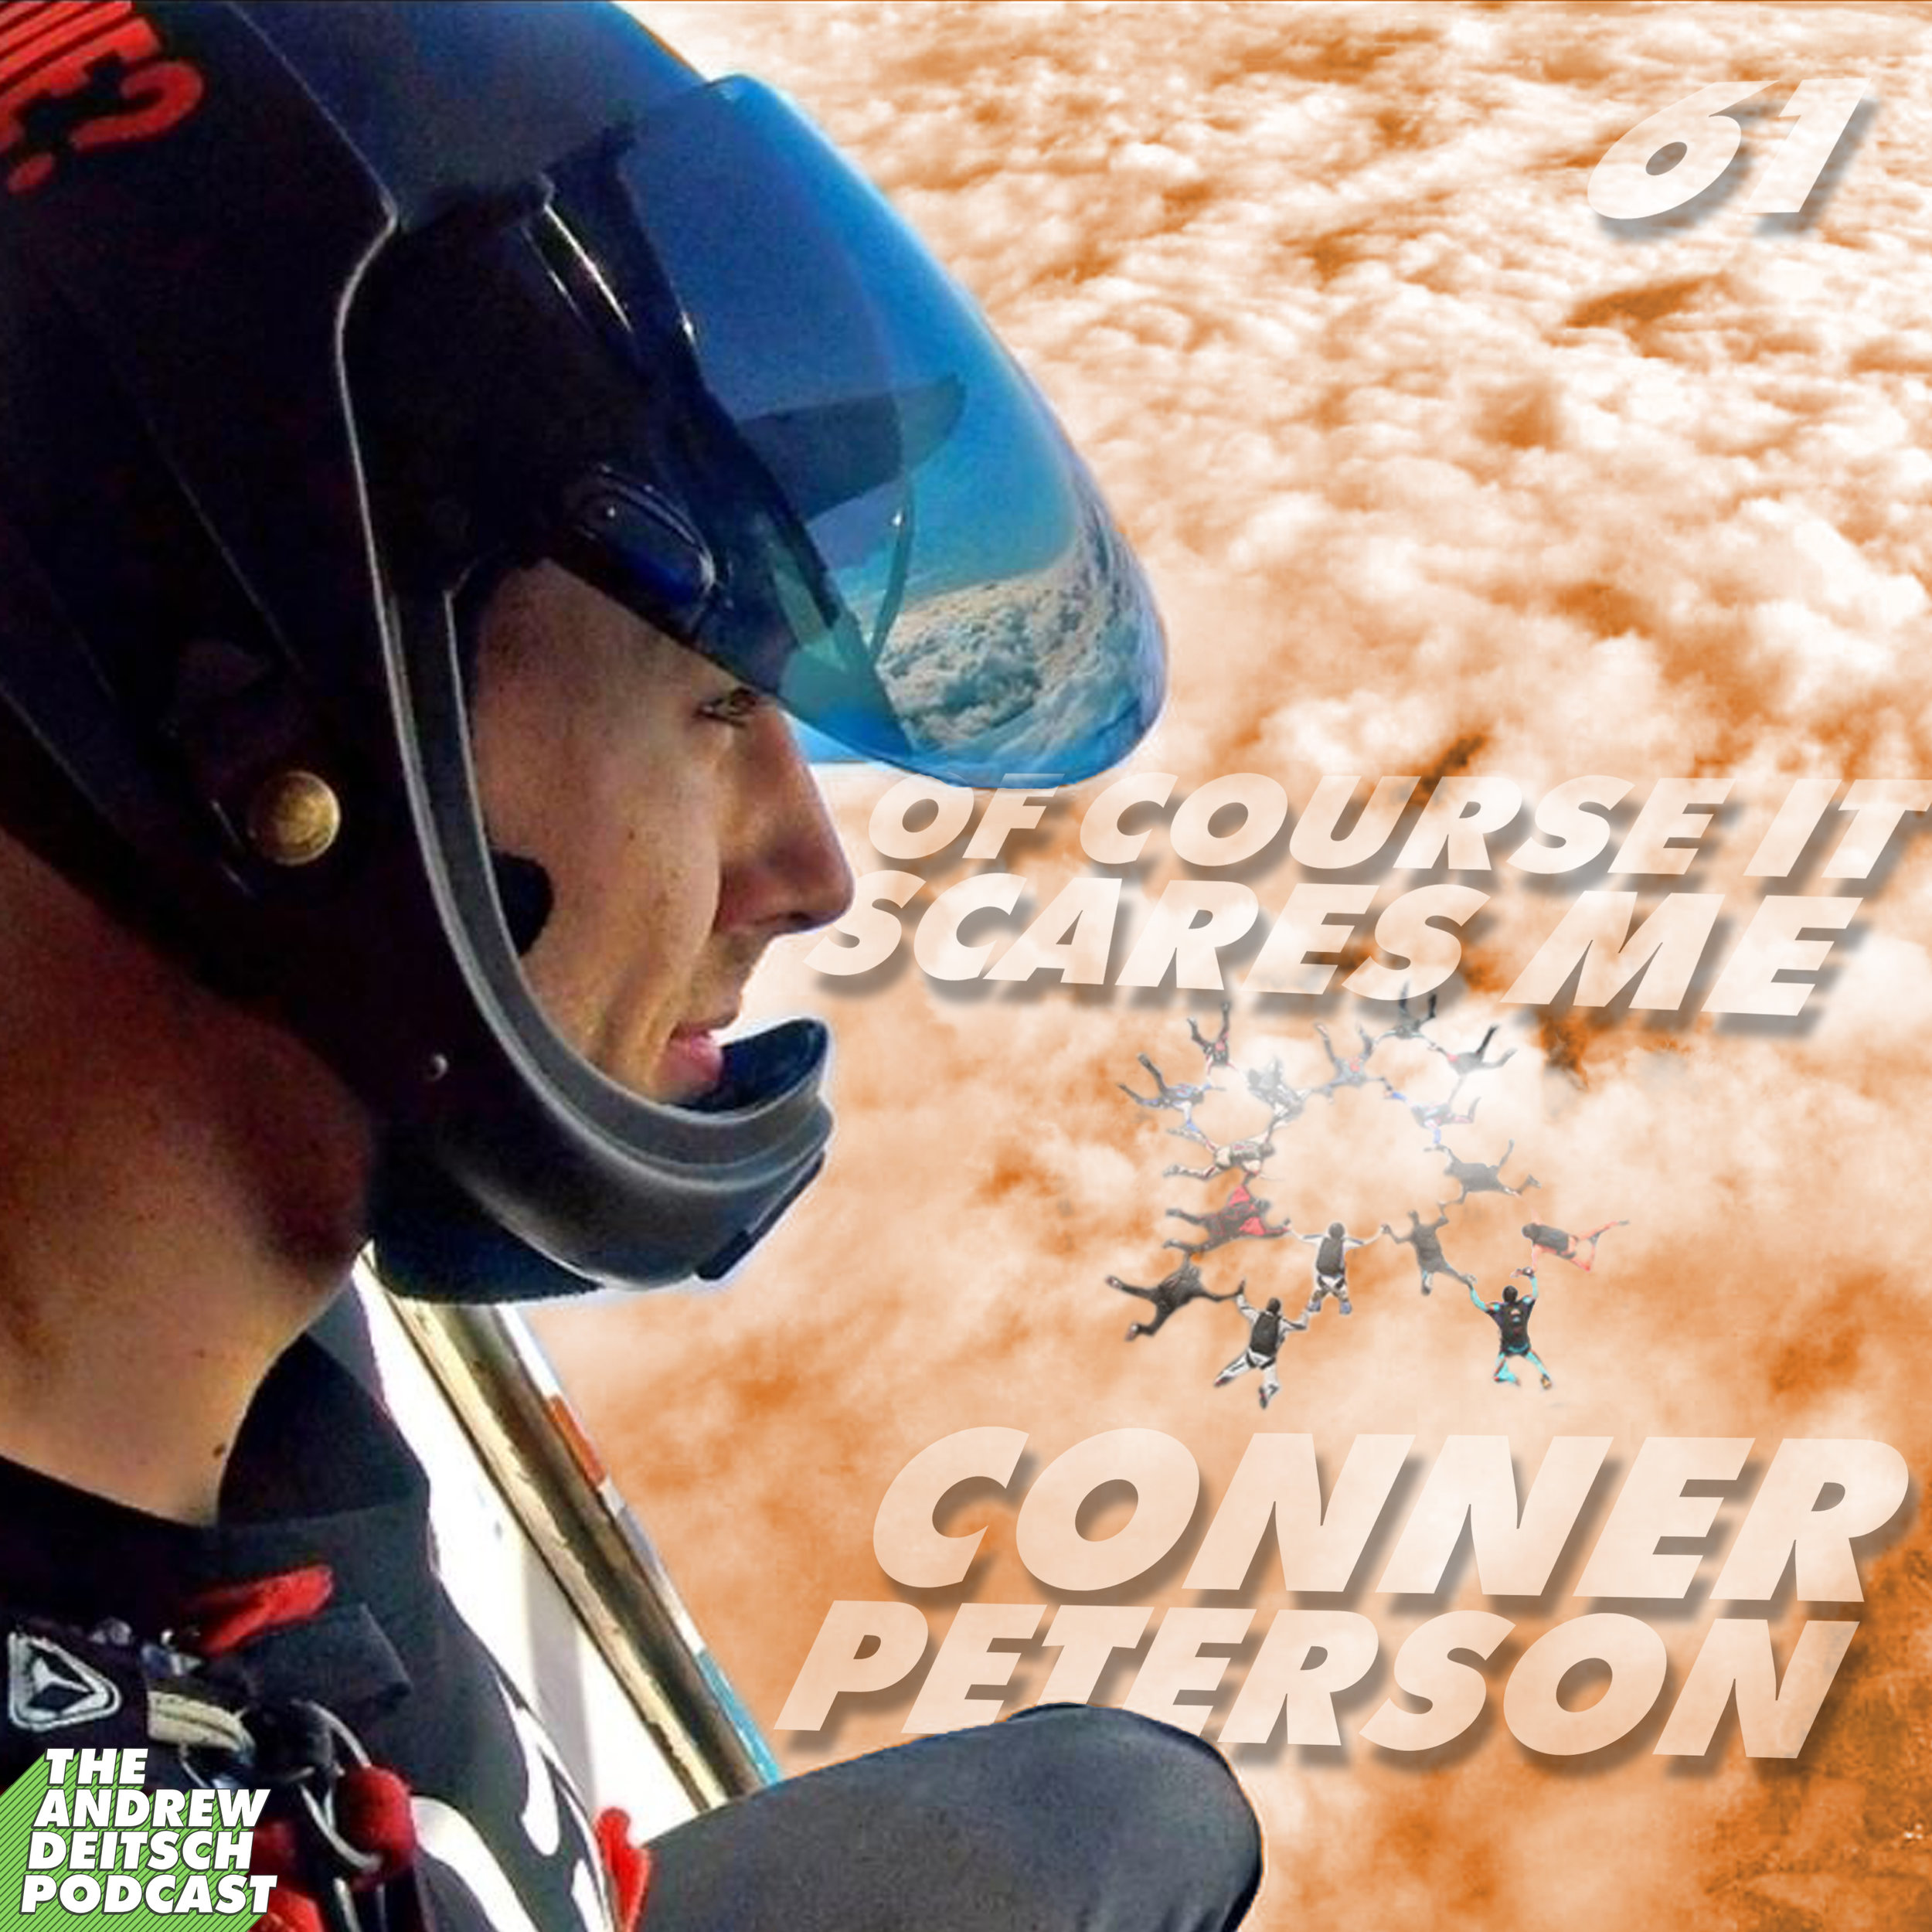 61-conner-peterson